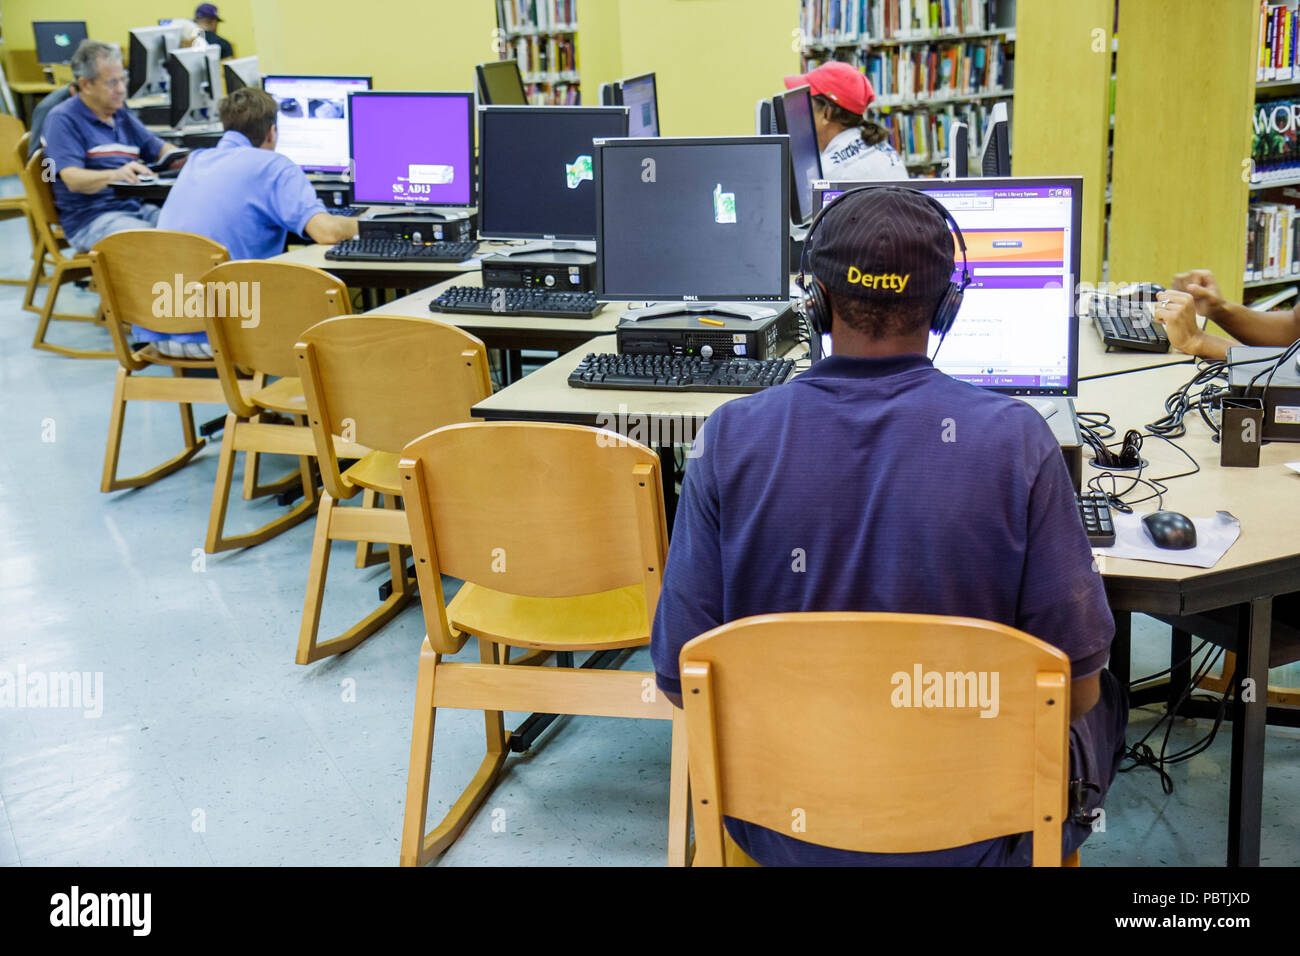 Miami Beach Florida South Shore Public Library desks computers chairs monitors Internet access free patrons - Stock Image